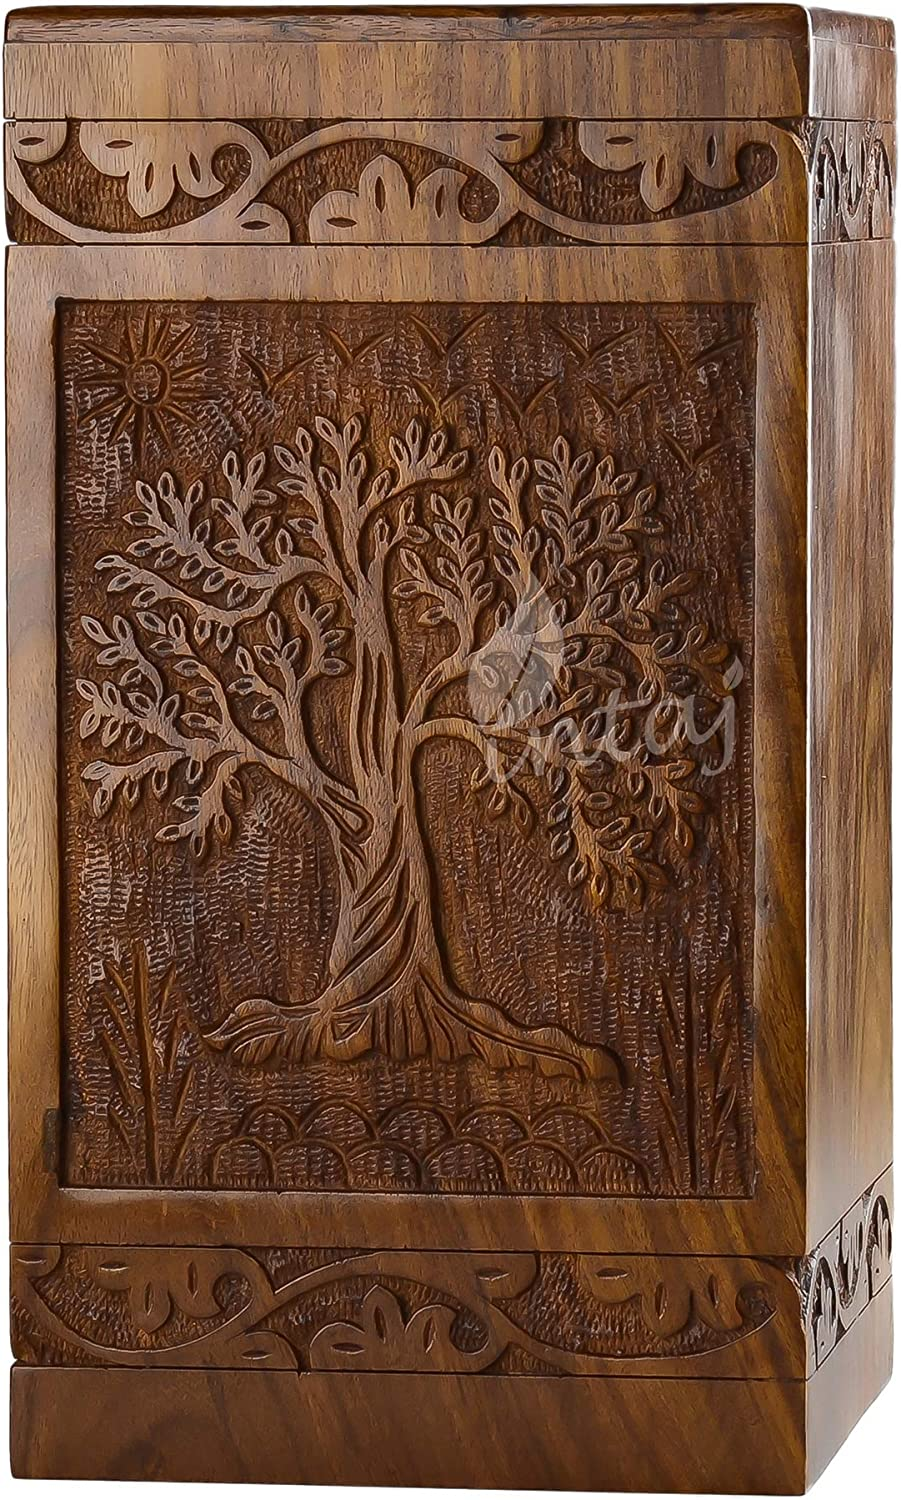 INTAJ Handmade Rosewood Urn for Human Ashes - Tree of Life Wooden Urns Hand-Crafted - Funeral Cremation Urn for Ashes (Adult (250 Cu/in), Rosewood Tree)